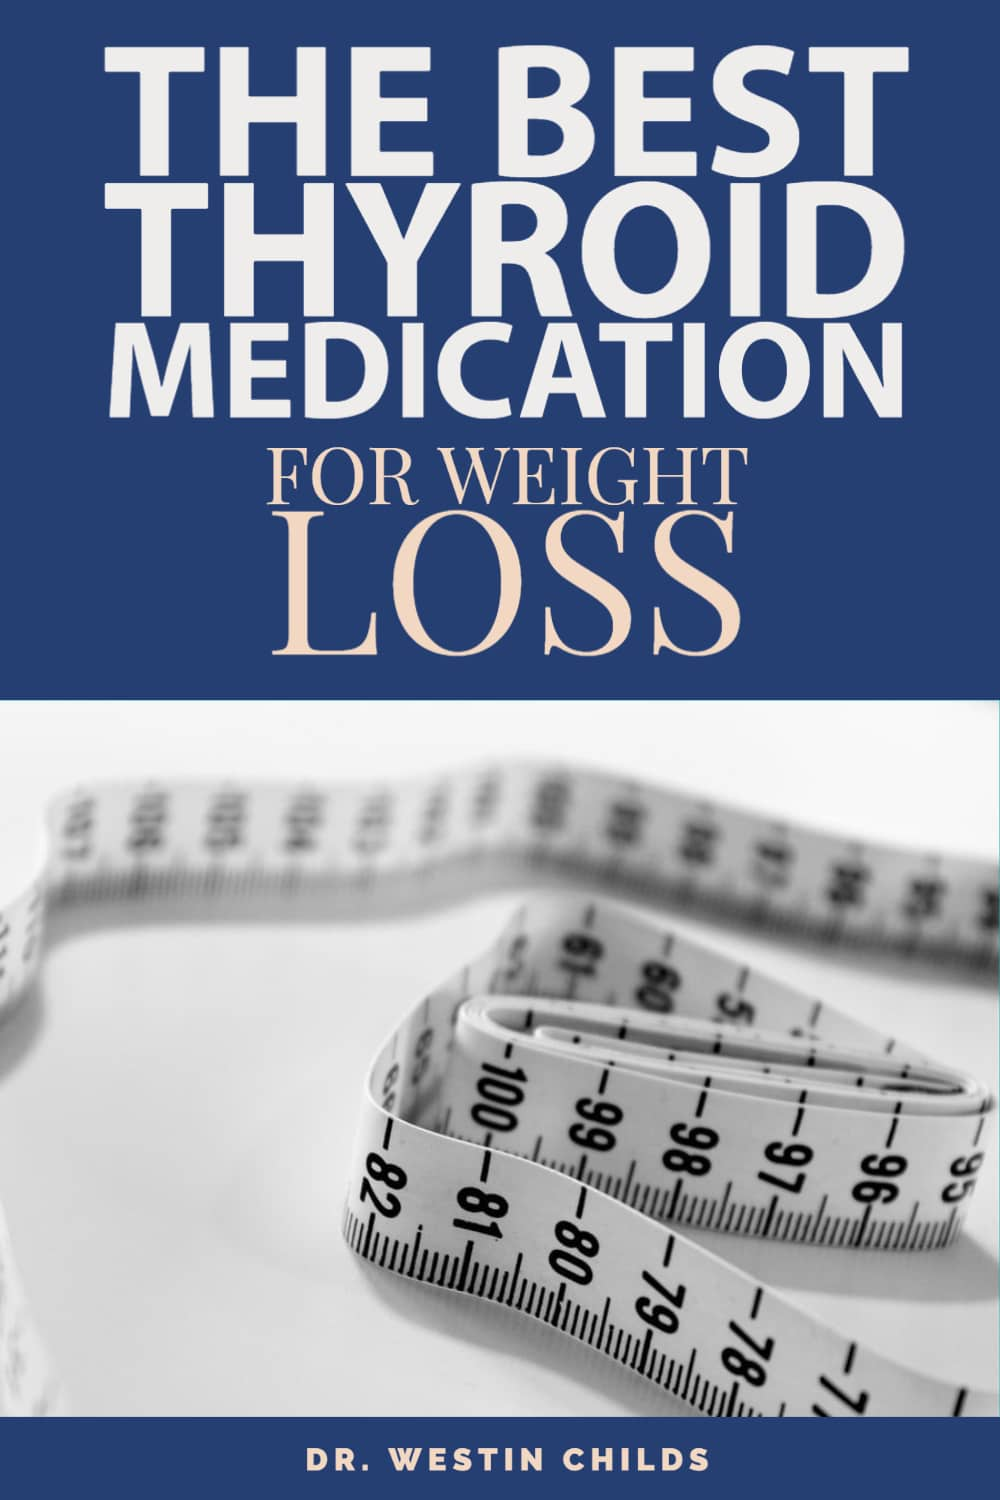 the best thyroid medication for weight loss pinterest